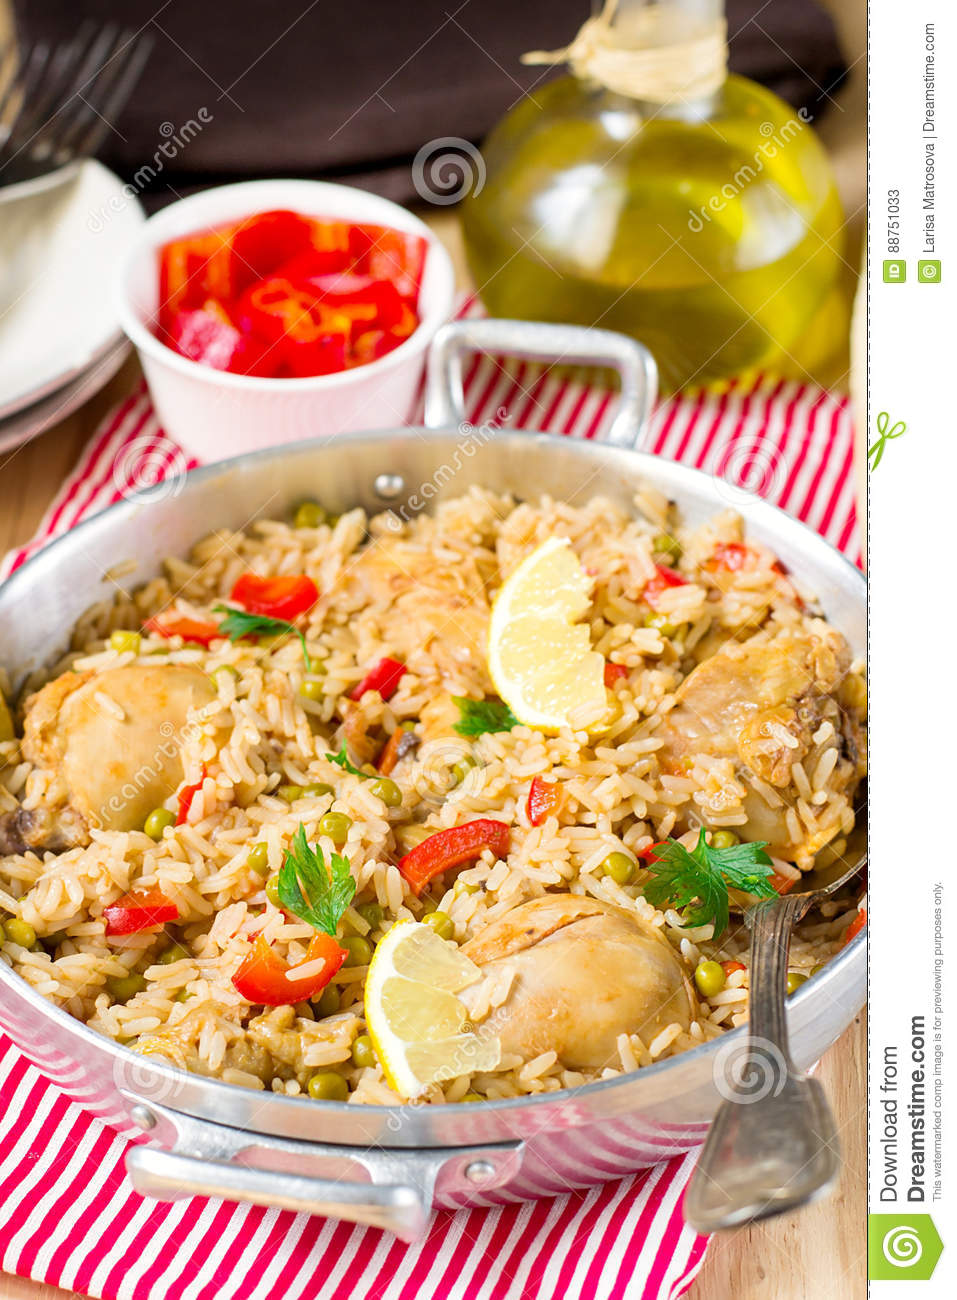 Chicken and rice with vegetables